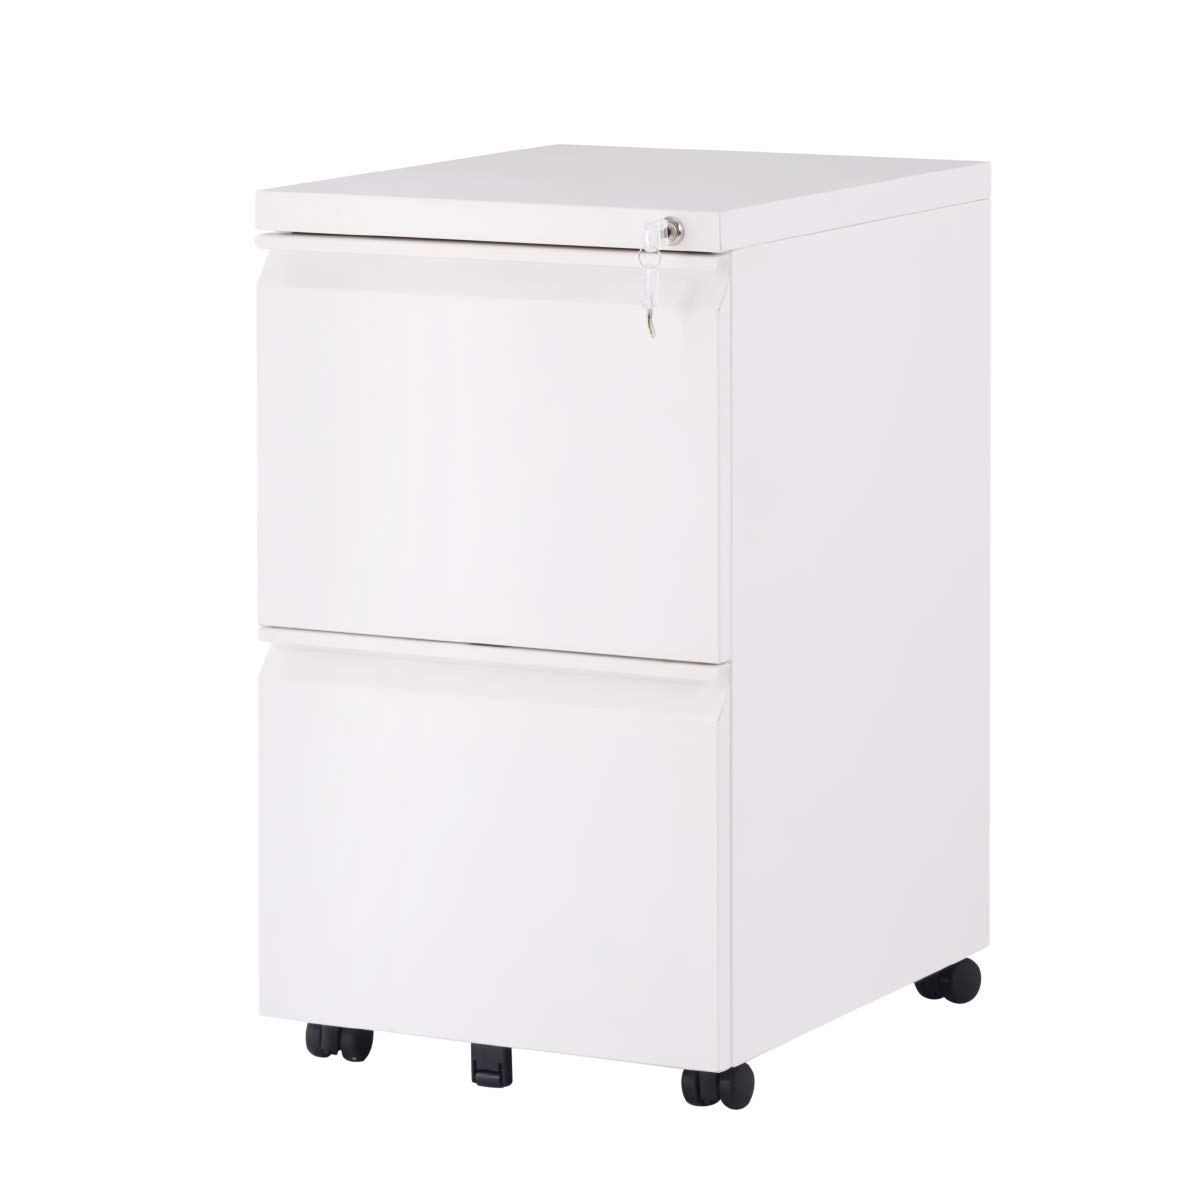 2 Drawer Locking File Cabinet with Wheels, Mobile Metal Filing Cabinet for Home and Office, Steel, White by ModernLuxe